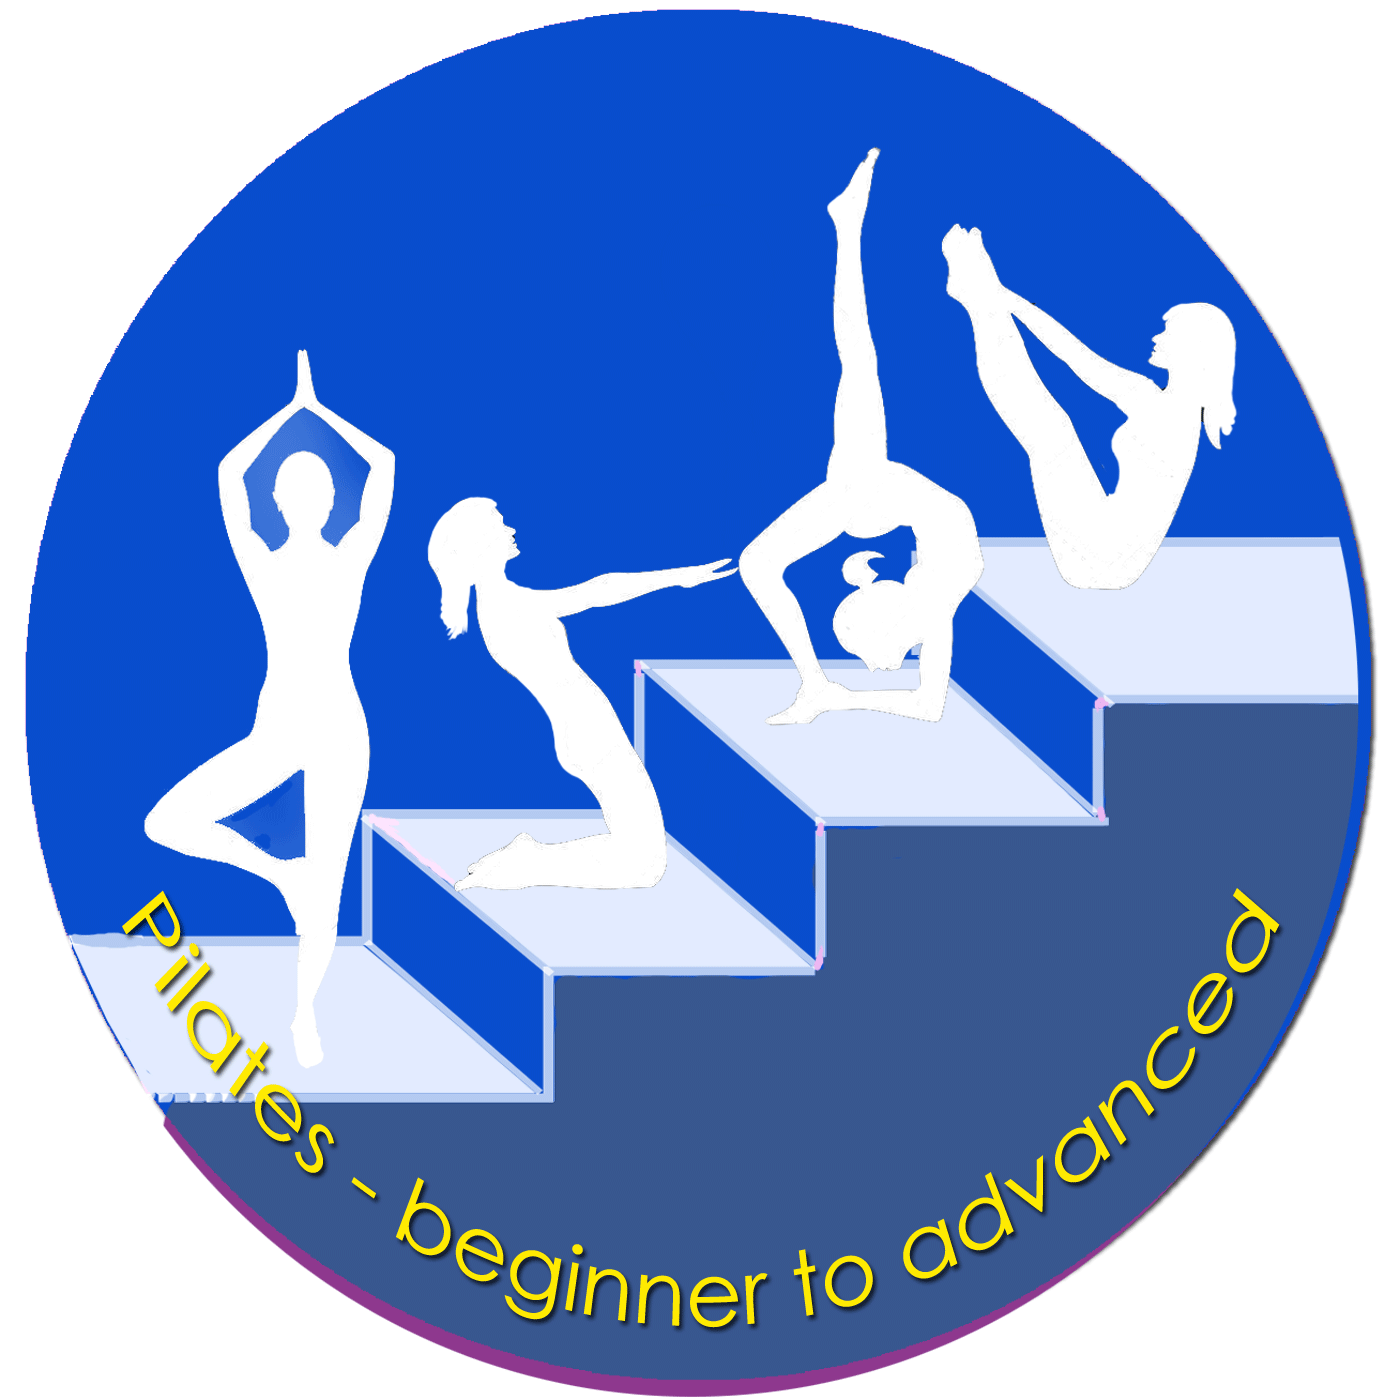 Click here for more details on, Pilates beginner - intermediate - advanced